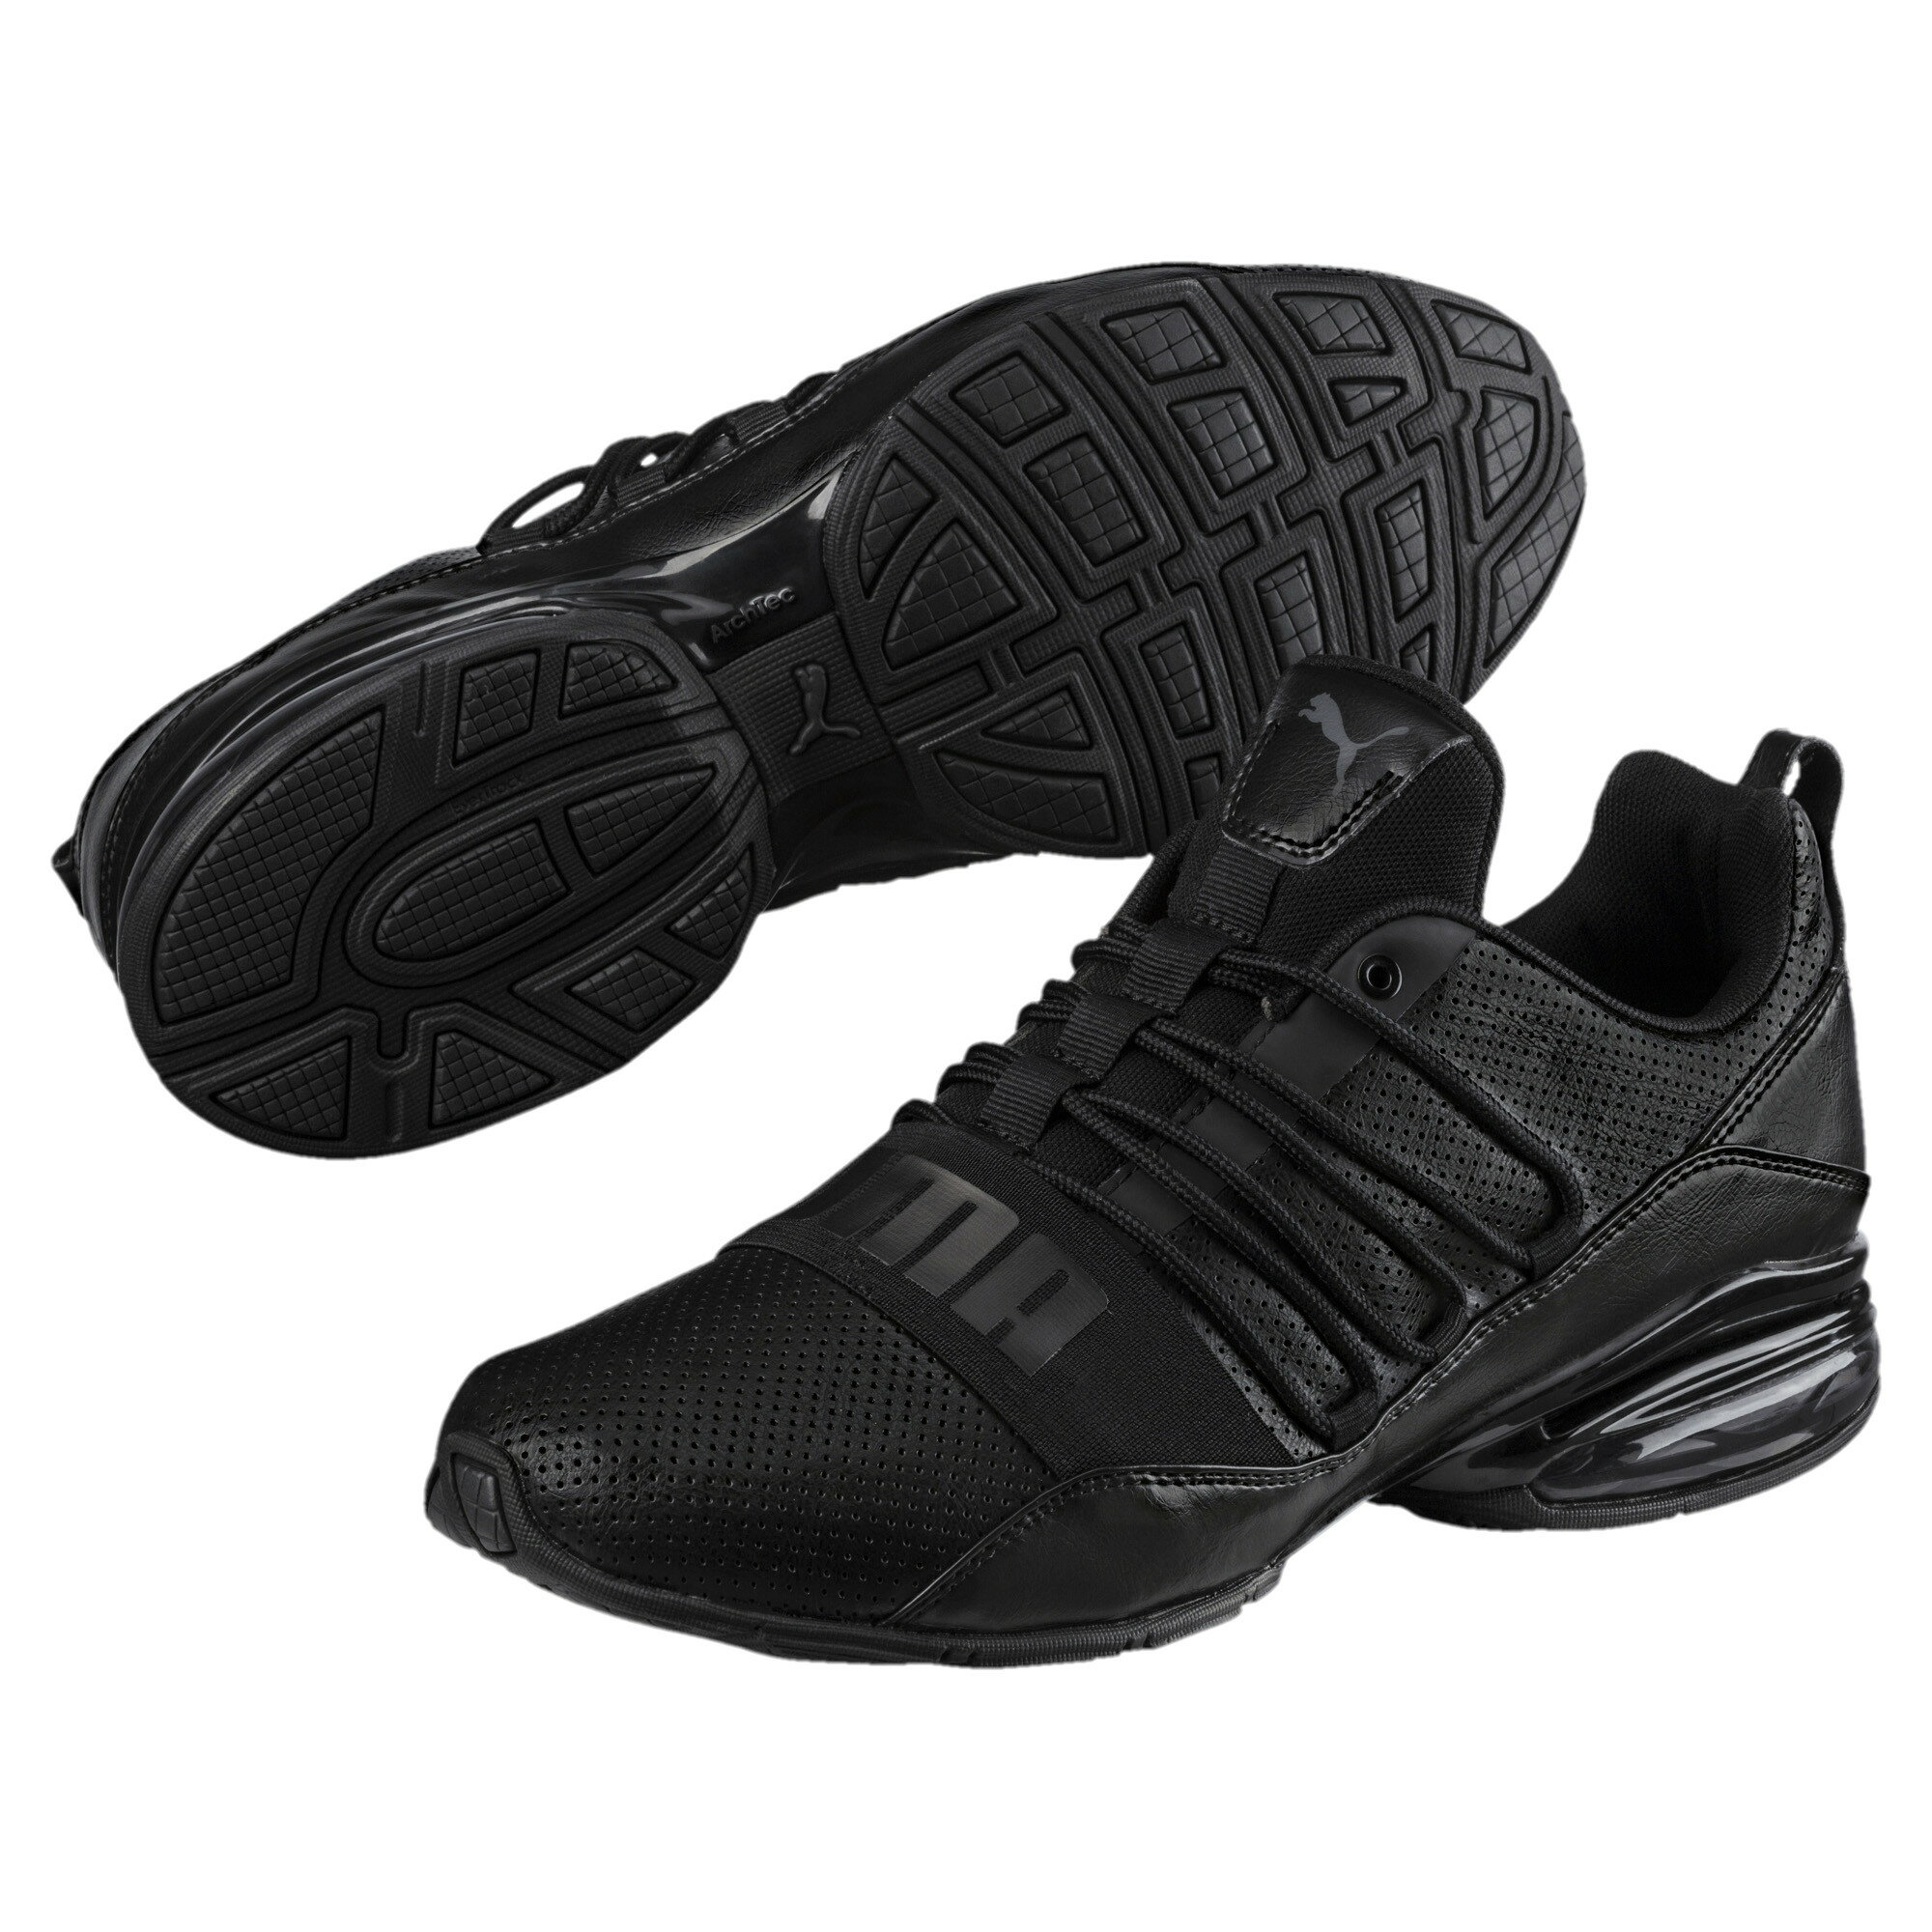 Official Puma Store  PUMA Cell Pro Limit Men s Running Shoes ... 020410216